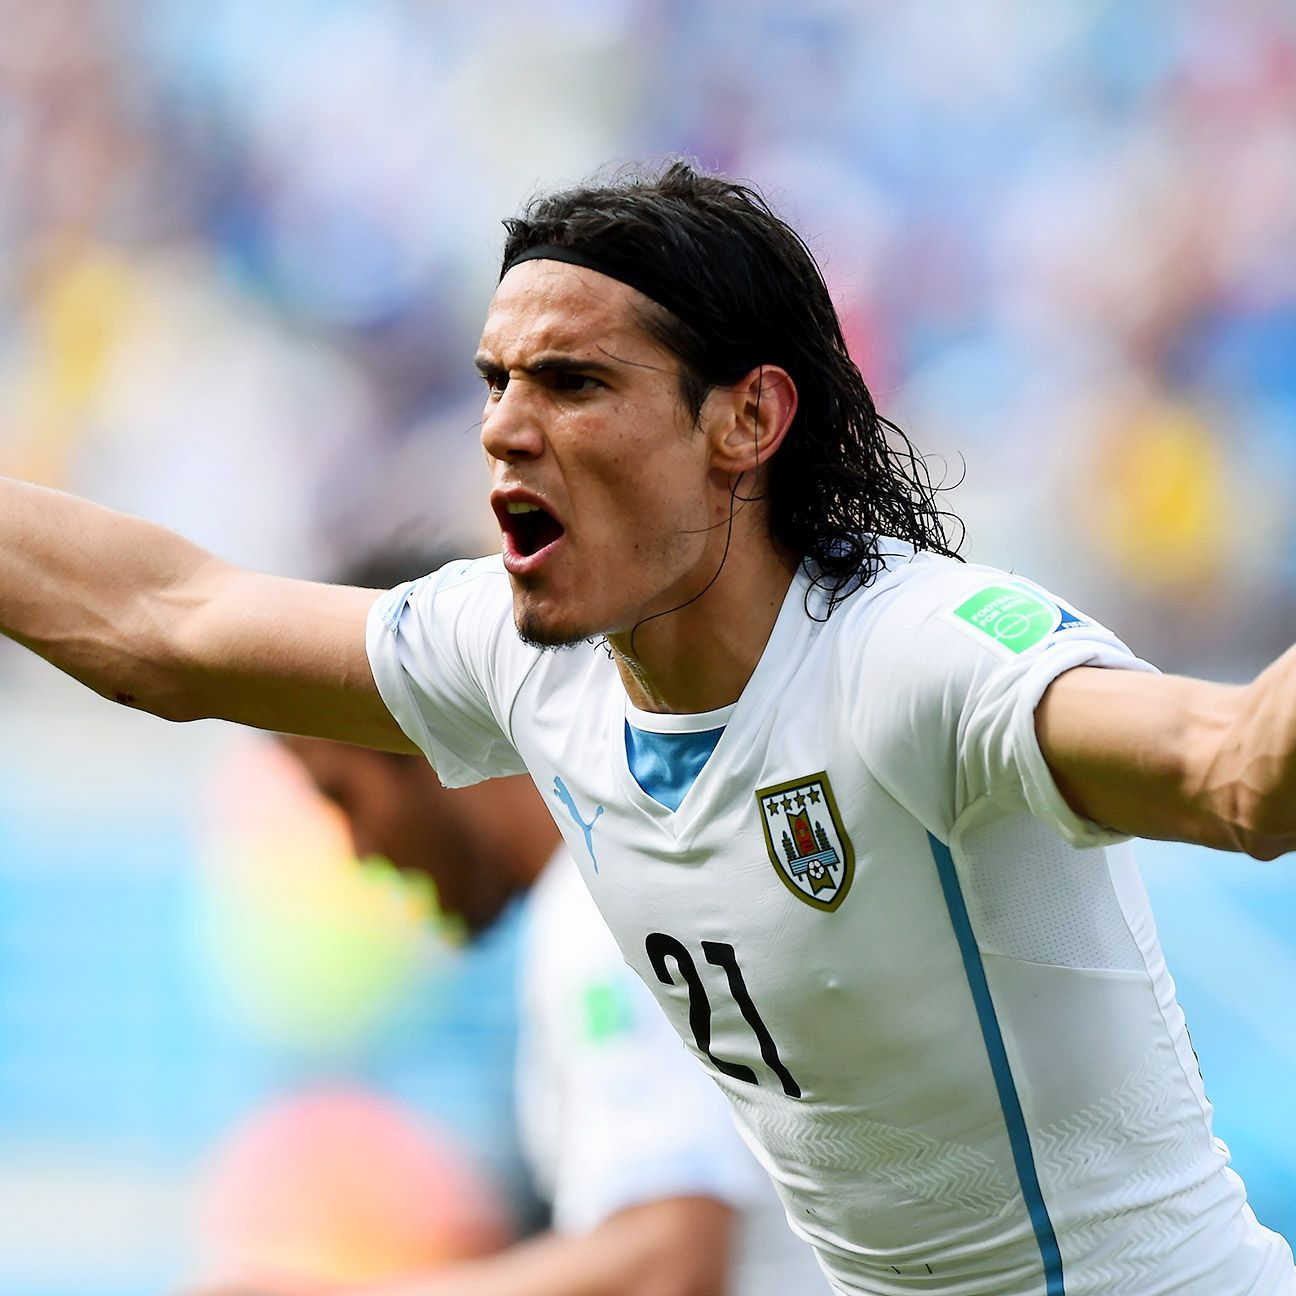 Edinson Cavani will need to step up in Suarez's absence against Colombia.